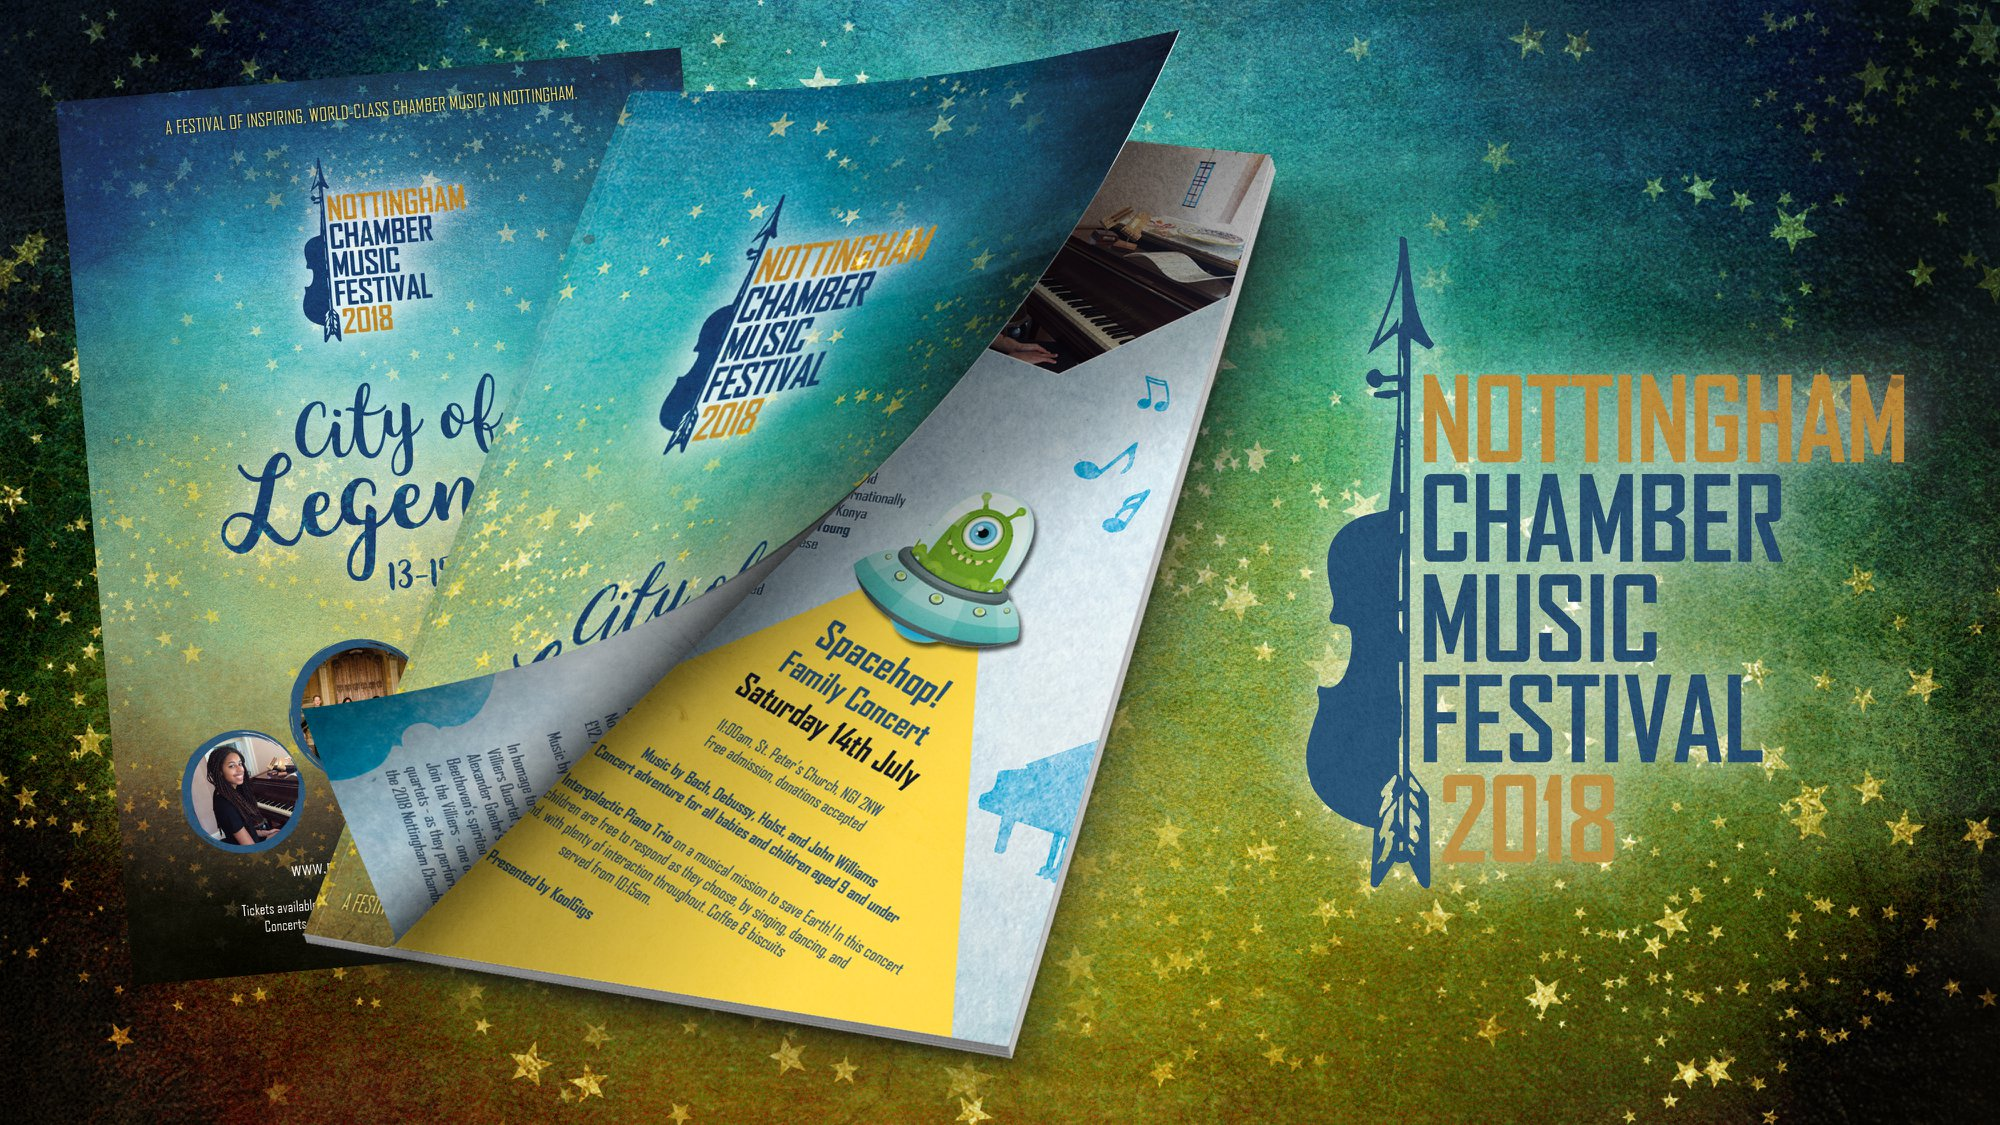 Pic of The Nottingham Chamber Music Festival Brochure design